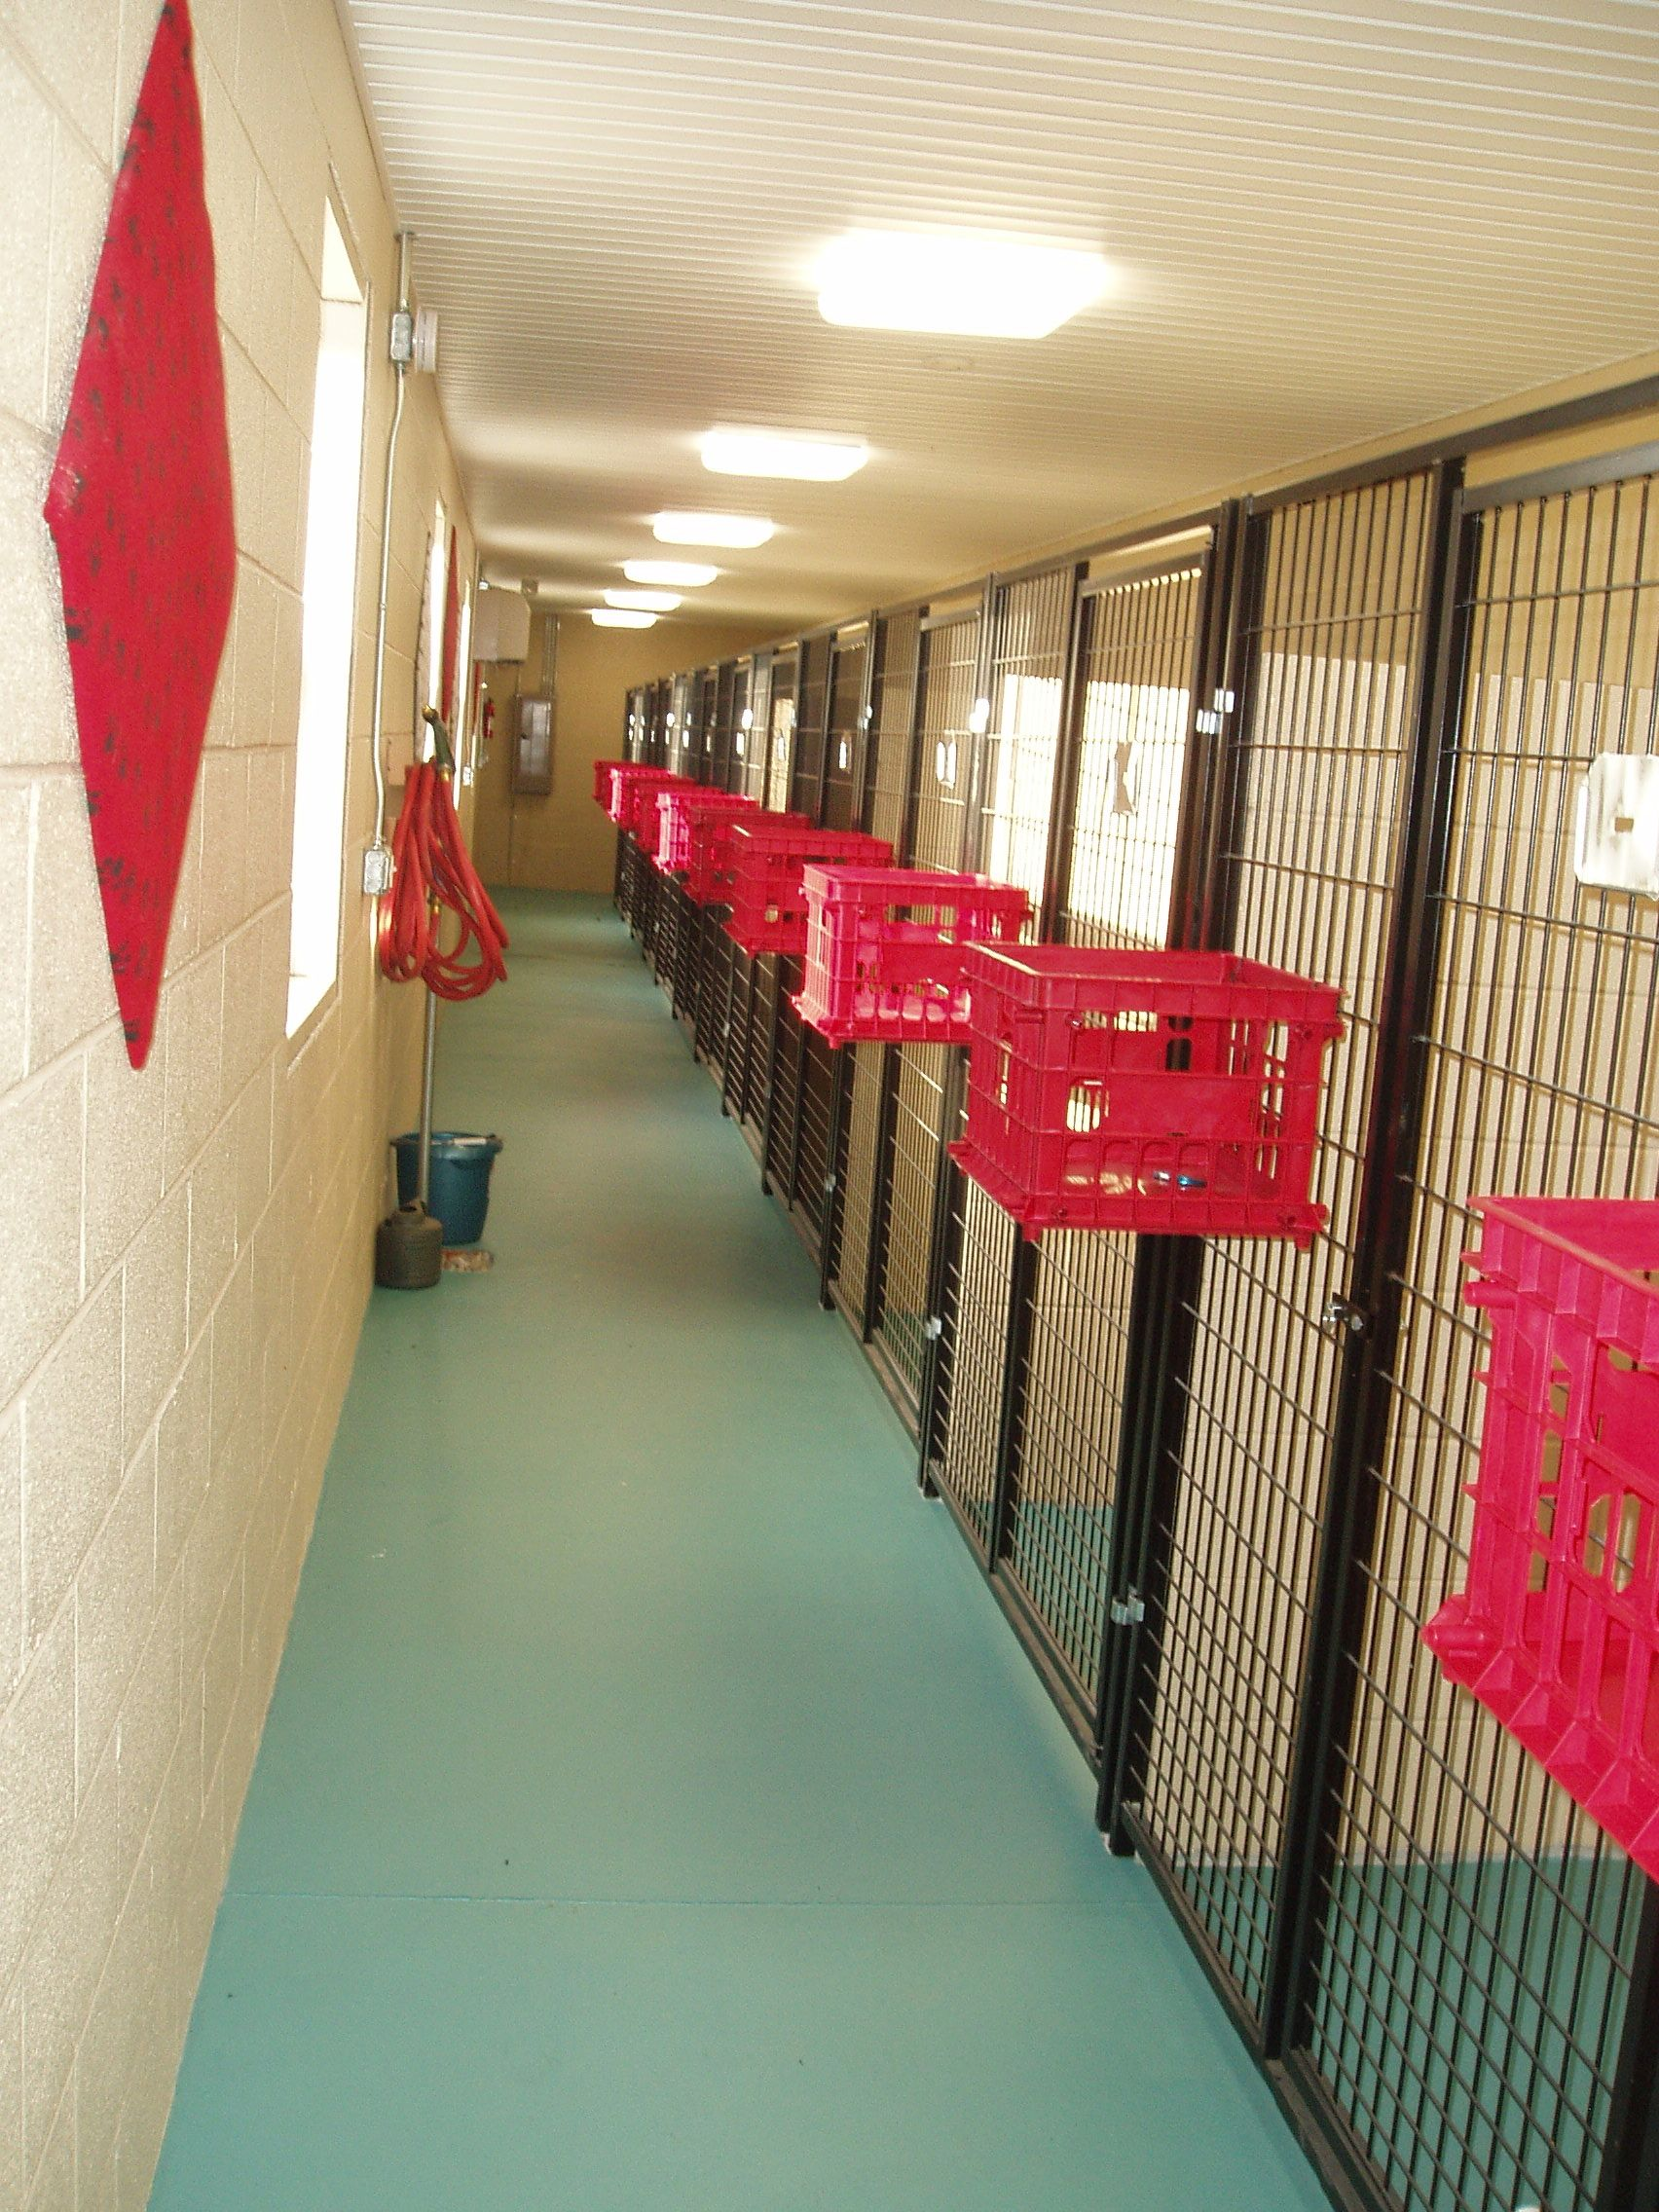 kennels Gallery loose kibble falls through off the